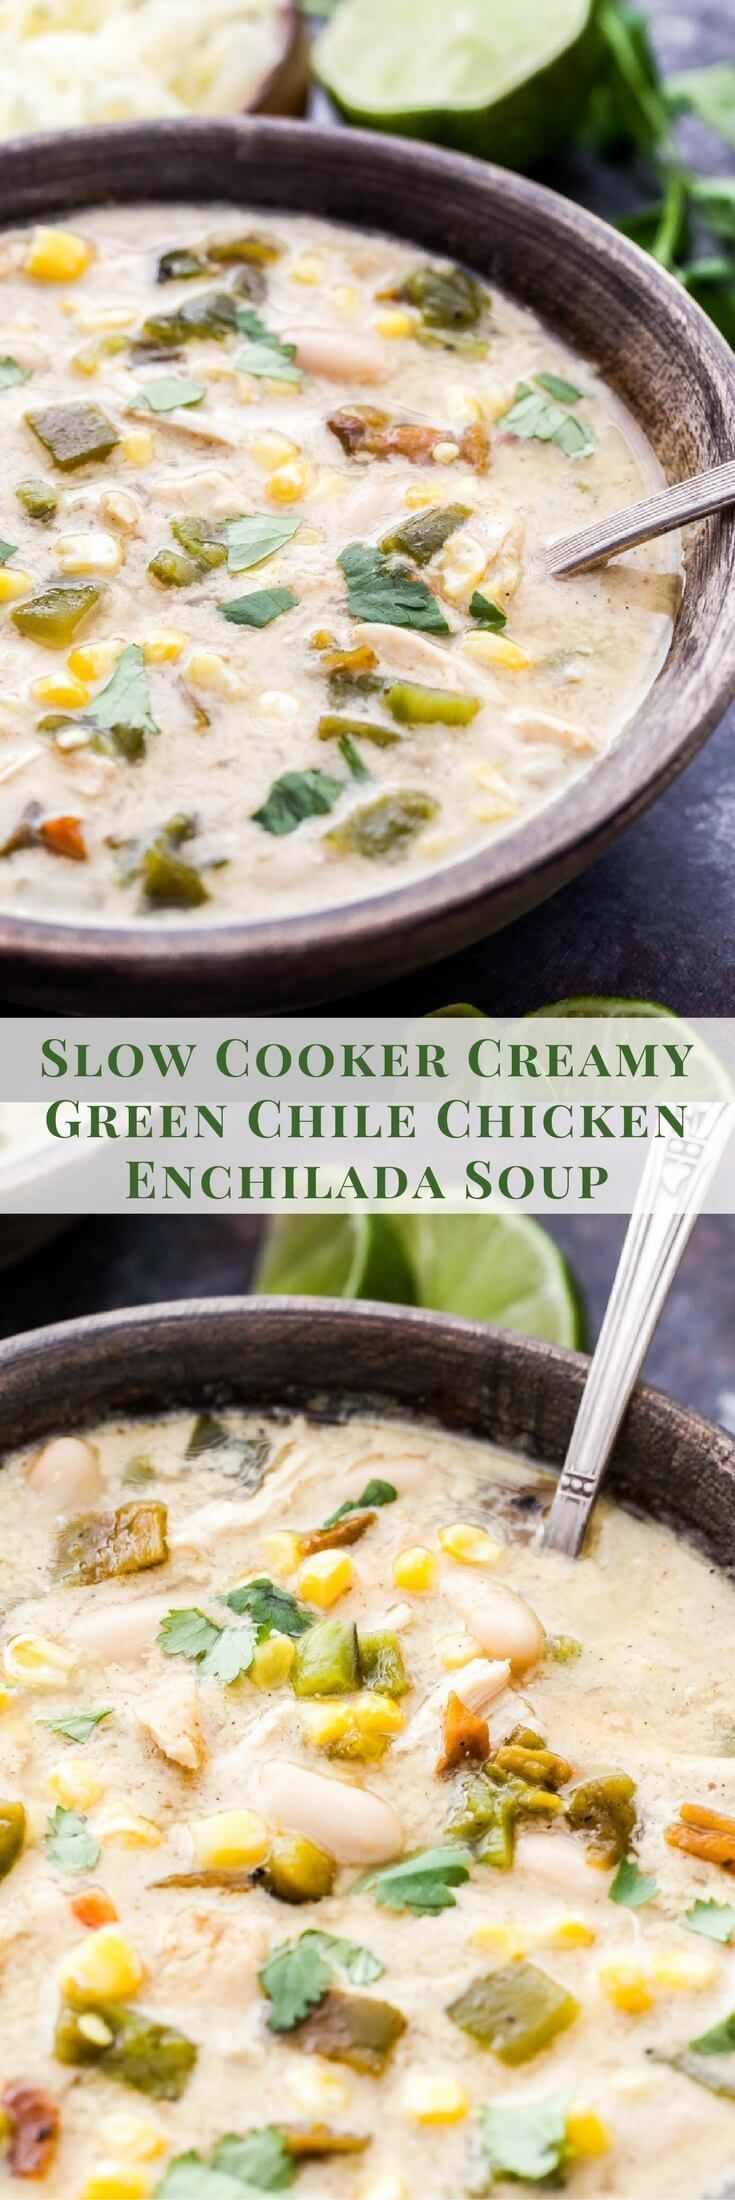 This Slow Cooker Creamy Green Chile Chicken Enchilada Soup has all the wonderful flavor of the enchiladas without all the work! Hearty, creamy, full of green chiles and totally satisfying!